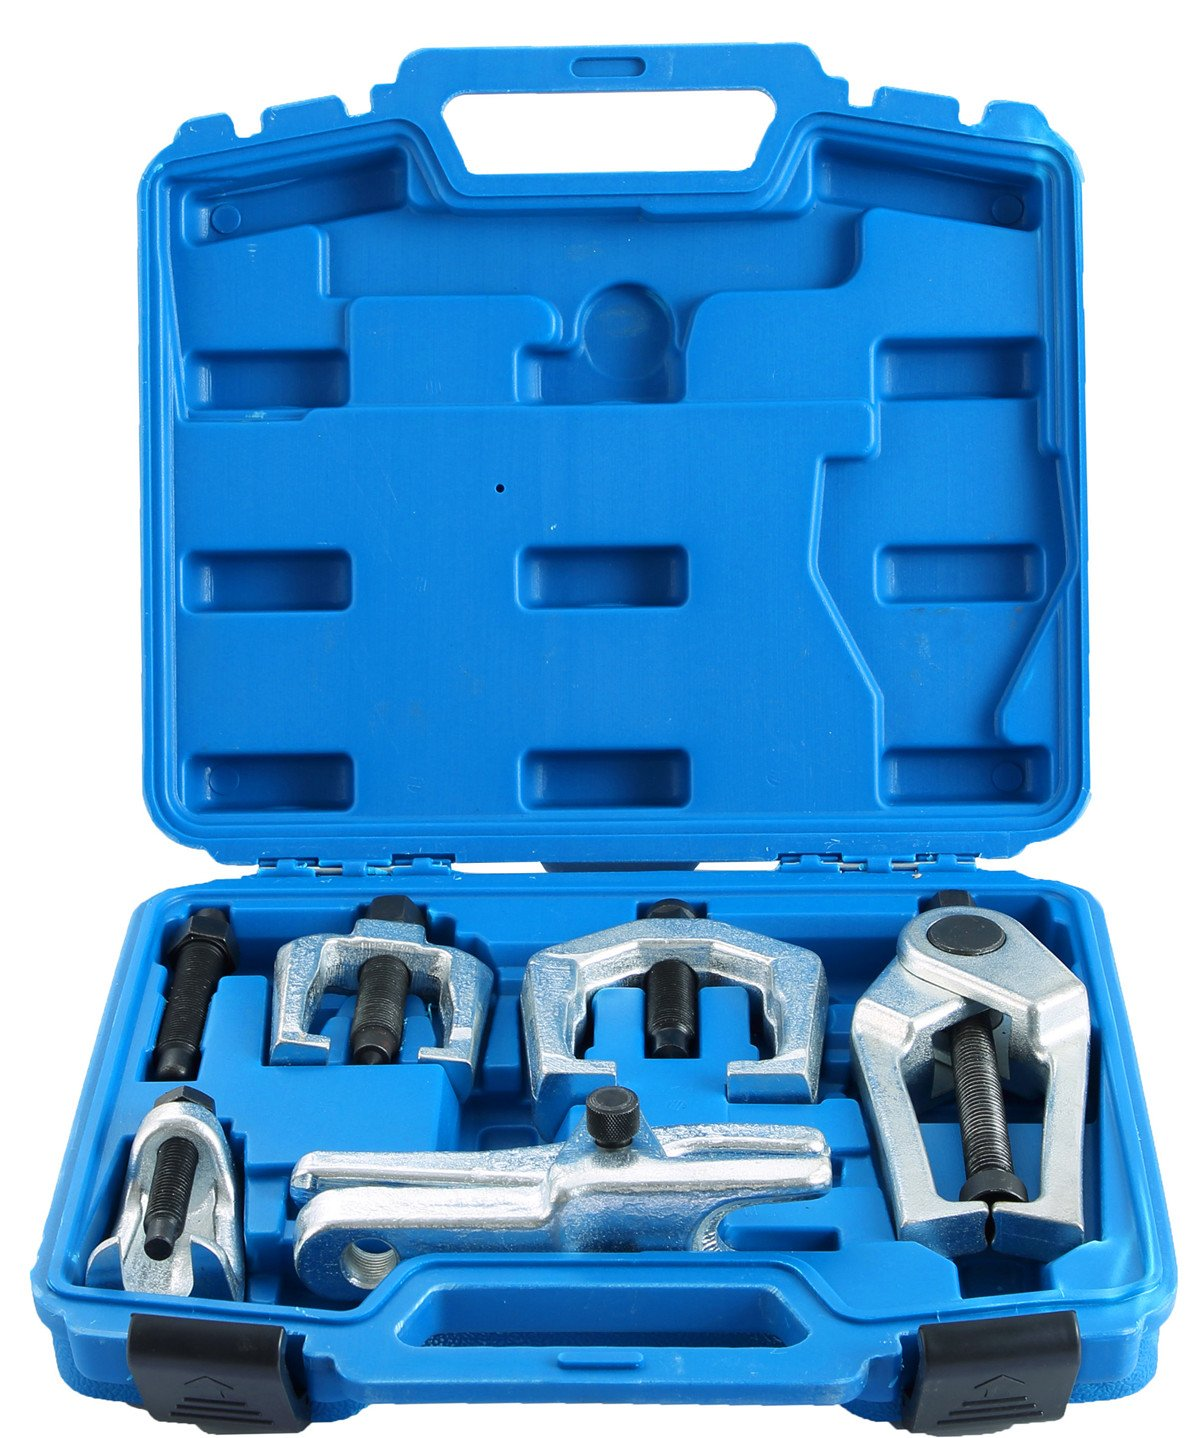 DASBET 6pc Front End Service Tool Kit Ball Joint Separator Pitman Arm Tie Rod Puller ZTECH AUTO